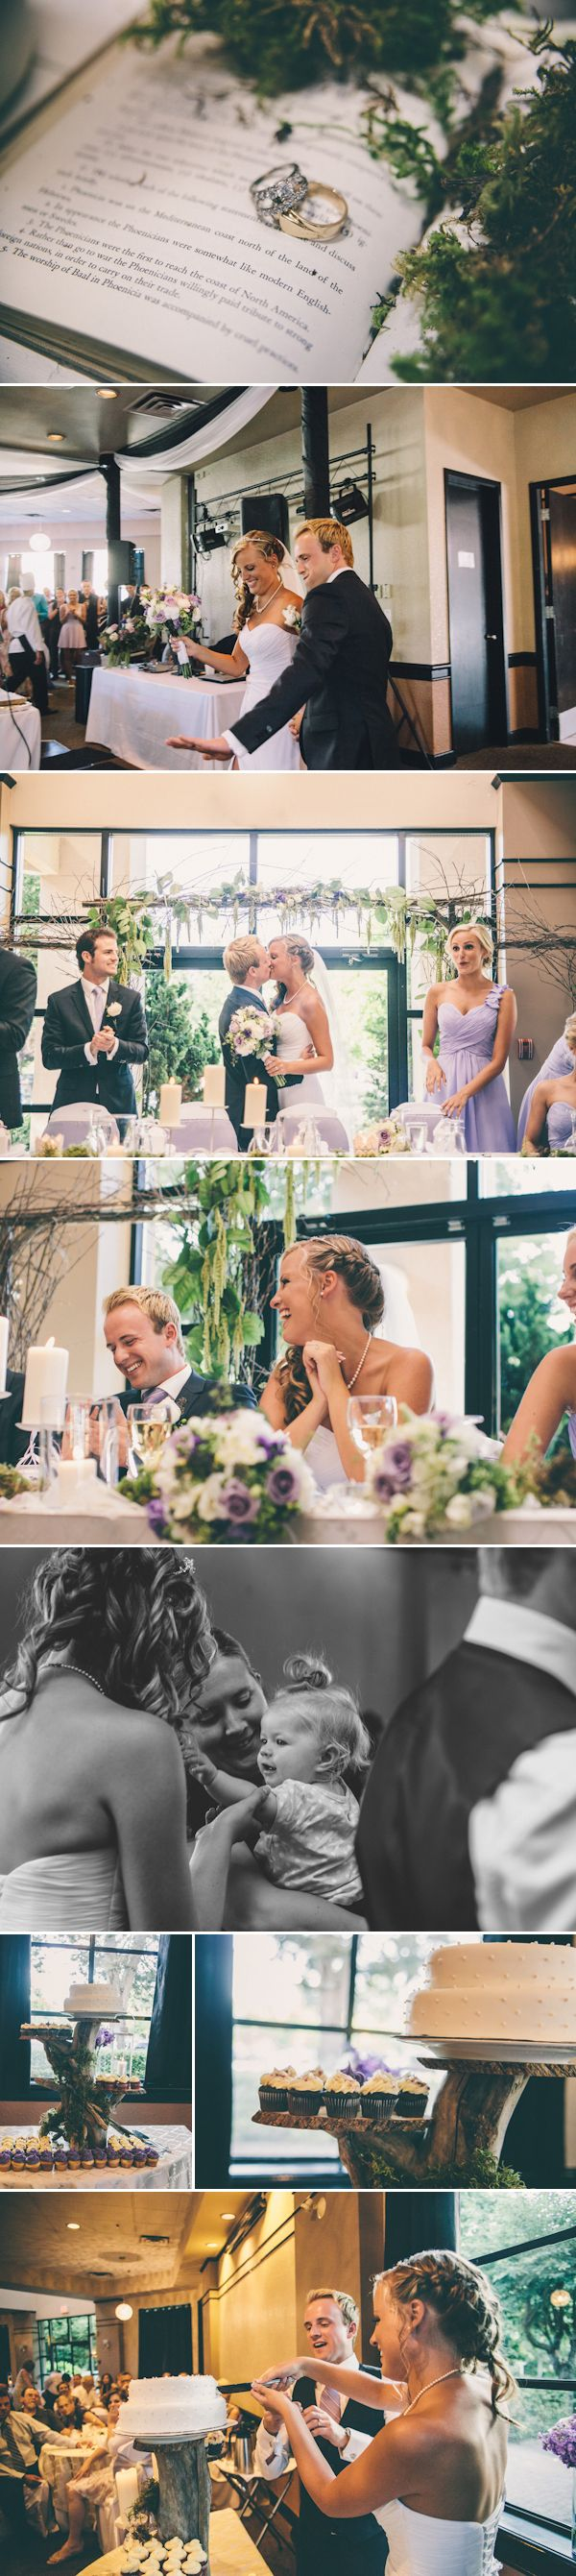 Whimsical Enchanted Forest Wedding from Owl & Fox Studios